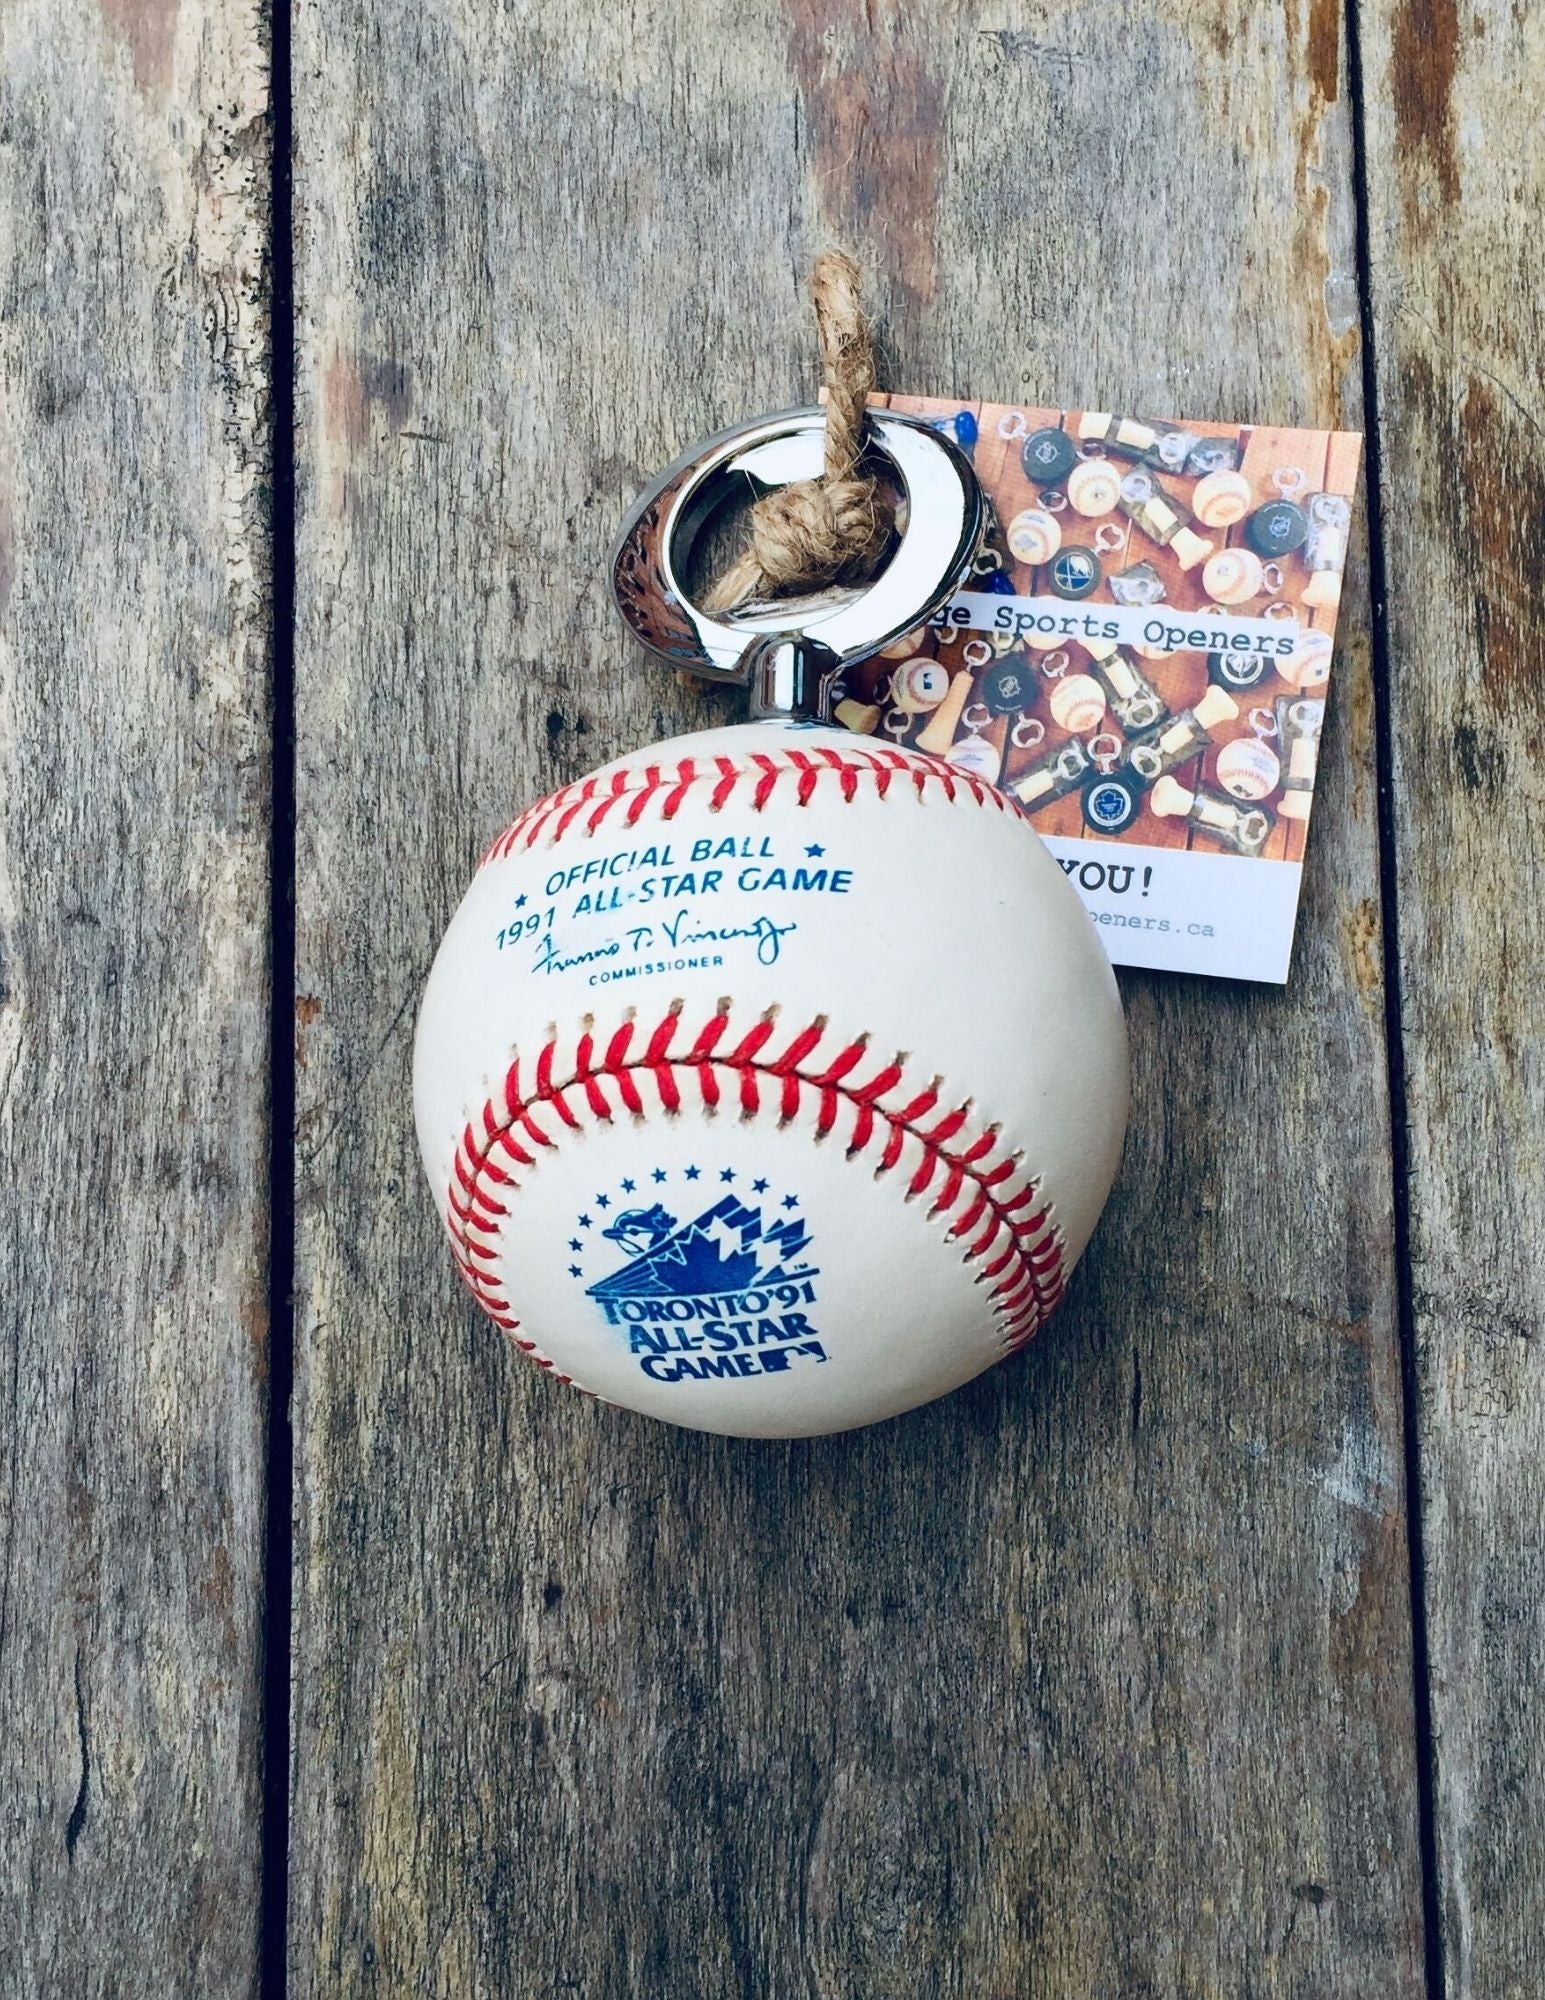 Authentic Rawlings 1991 Toronto MLB All-Star Official Game Ball Bottle Opener